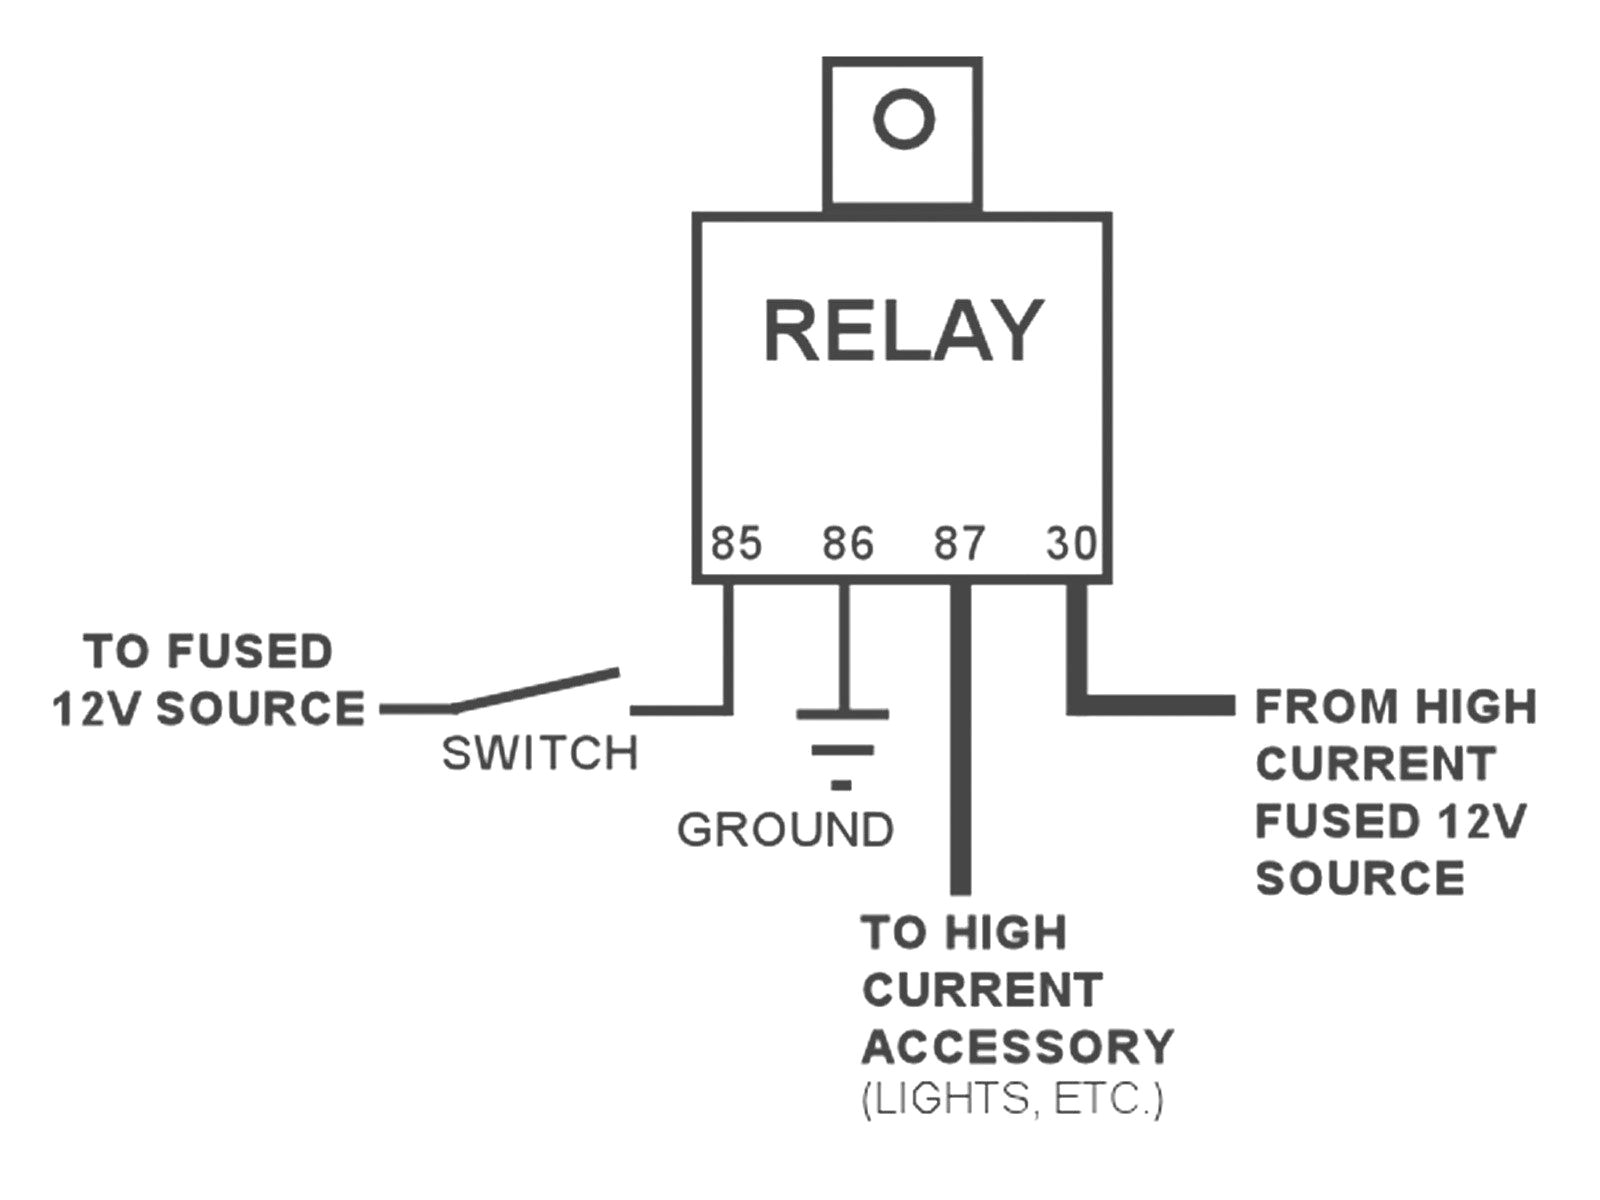 wiring diagram 12v relay wiring diagram for you 12v relay wiring diagram manual e book 12v